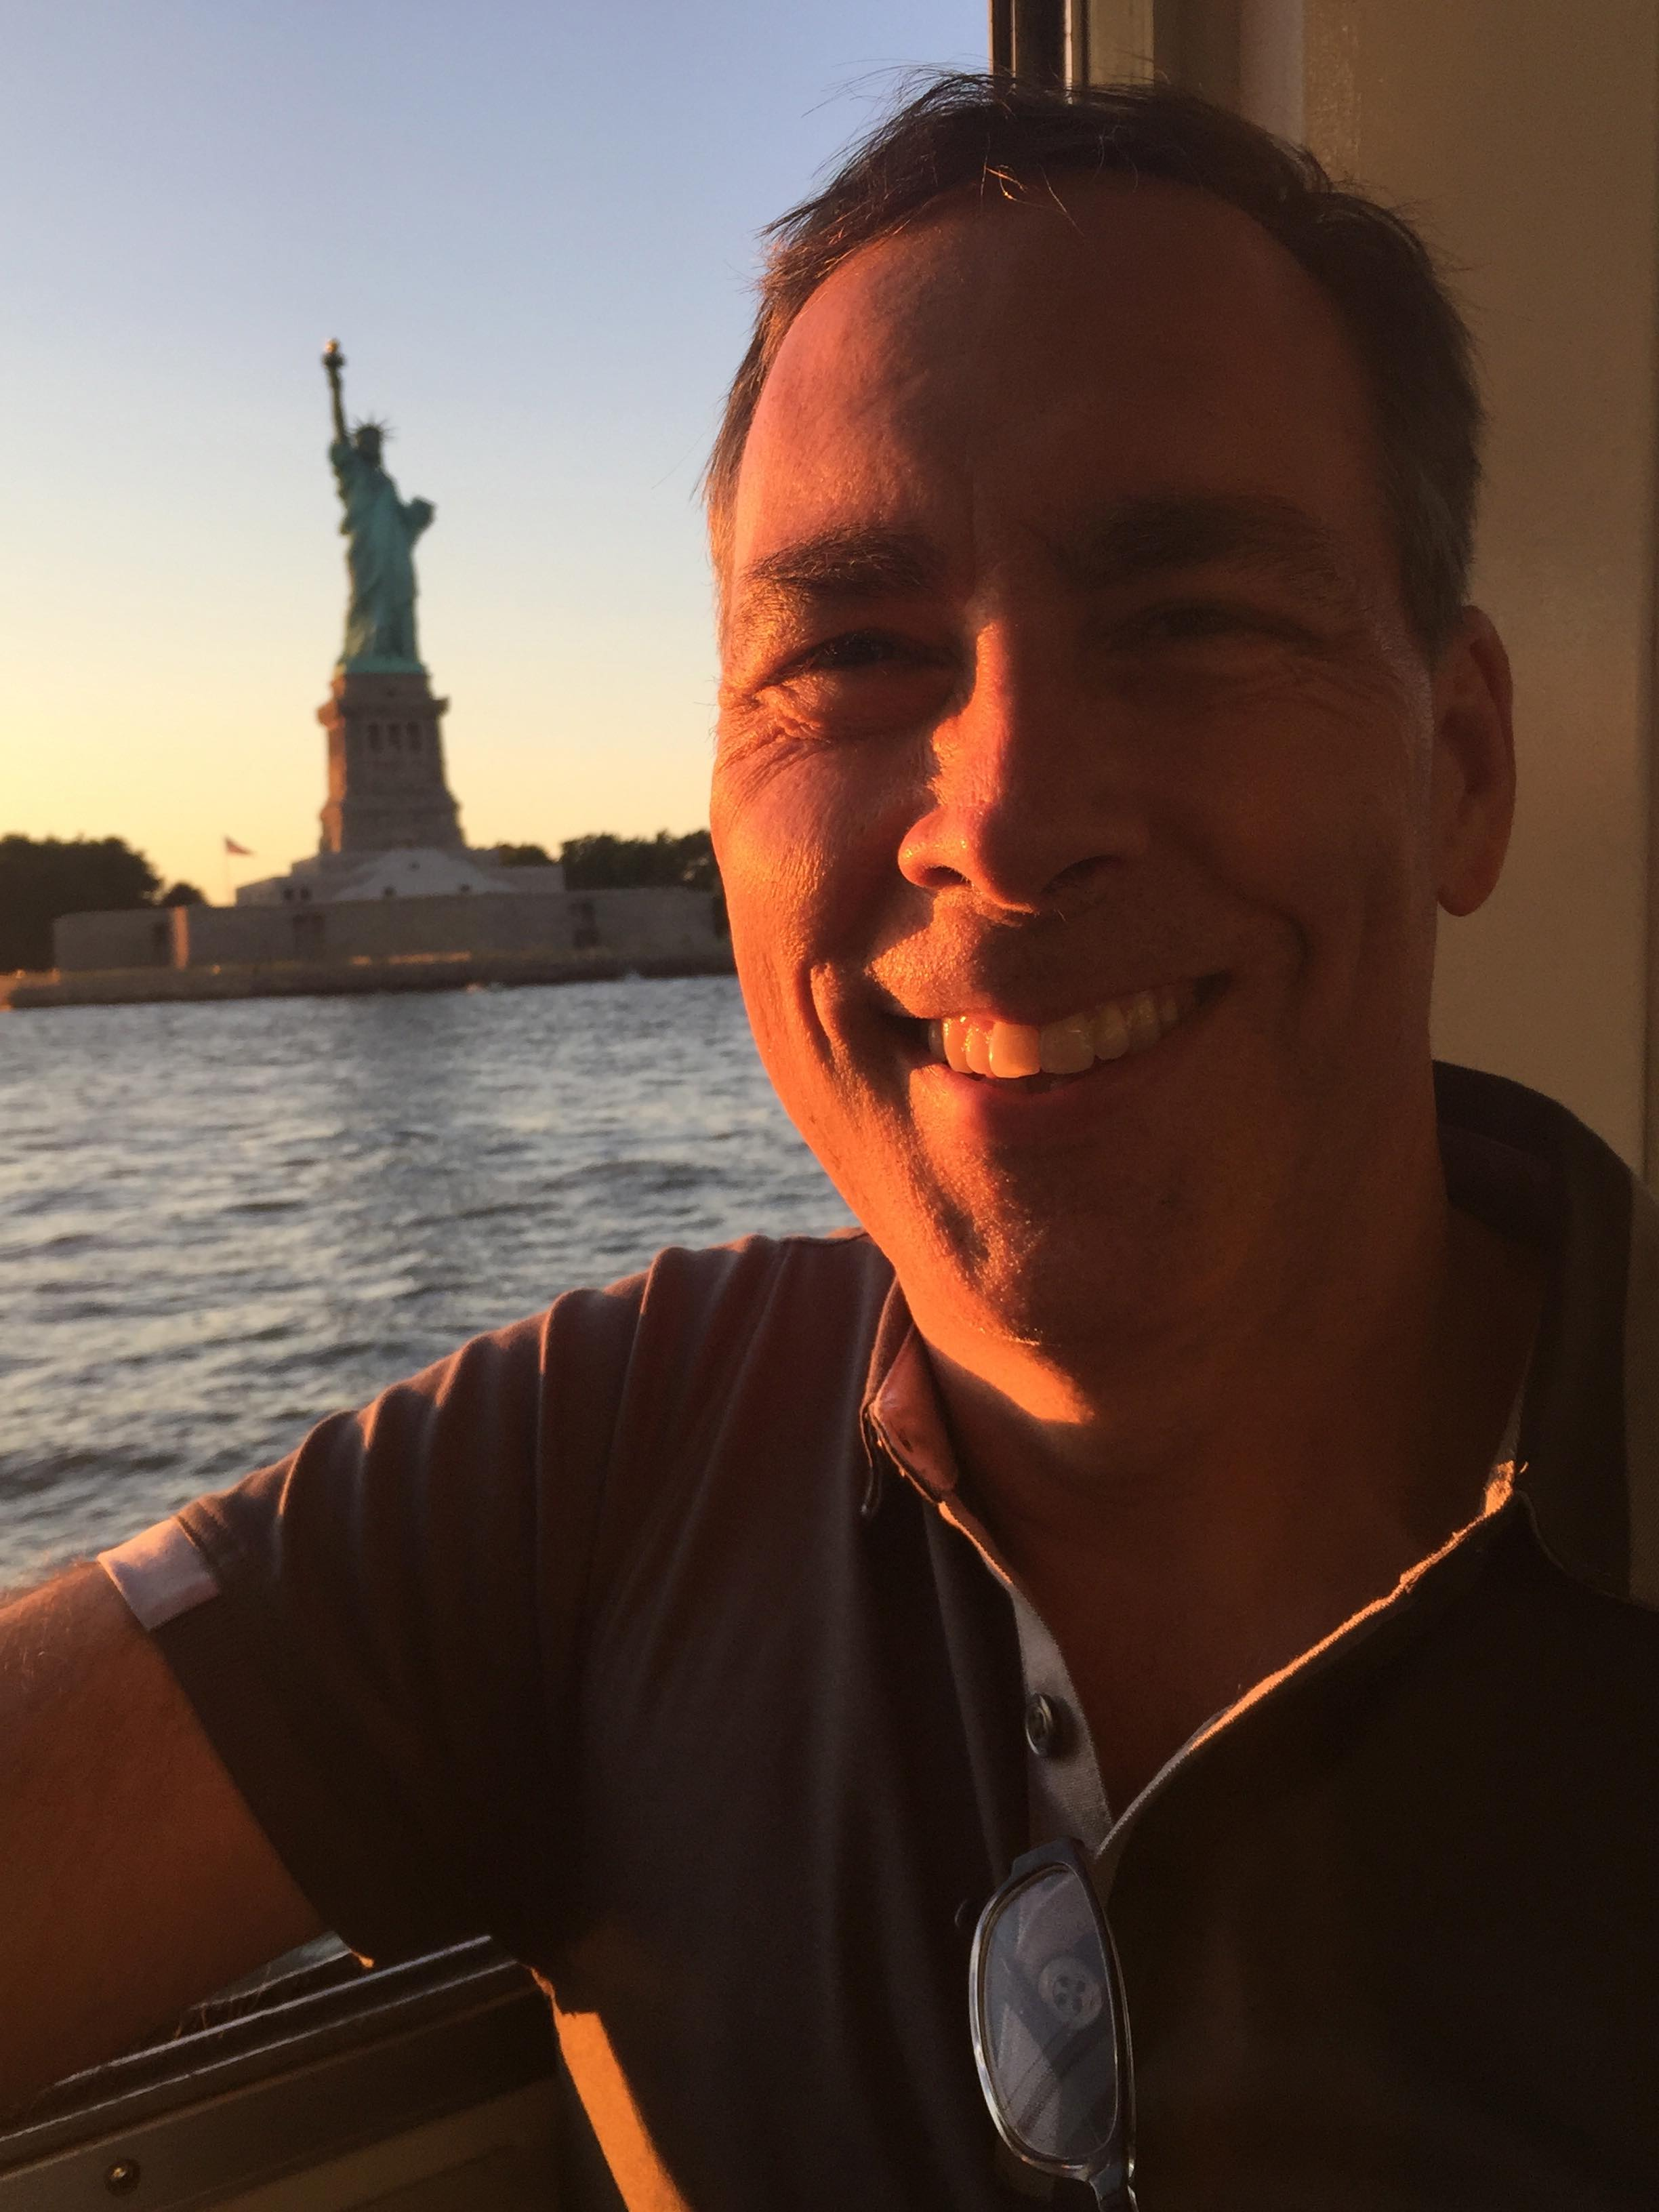 Greg Healy visiting Statue of Liberty